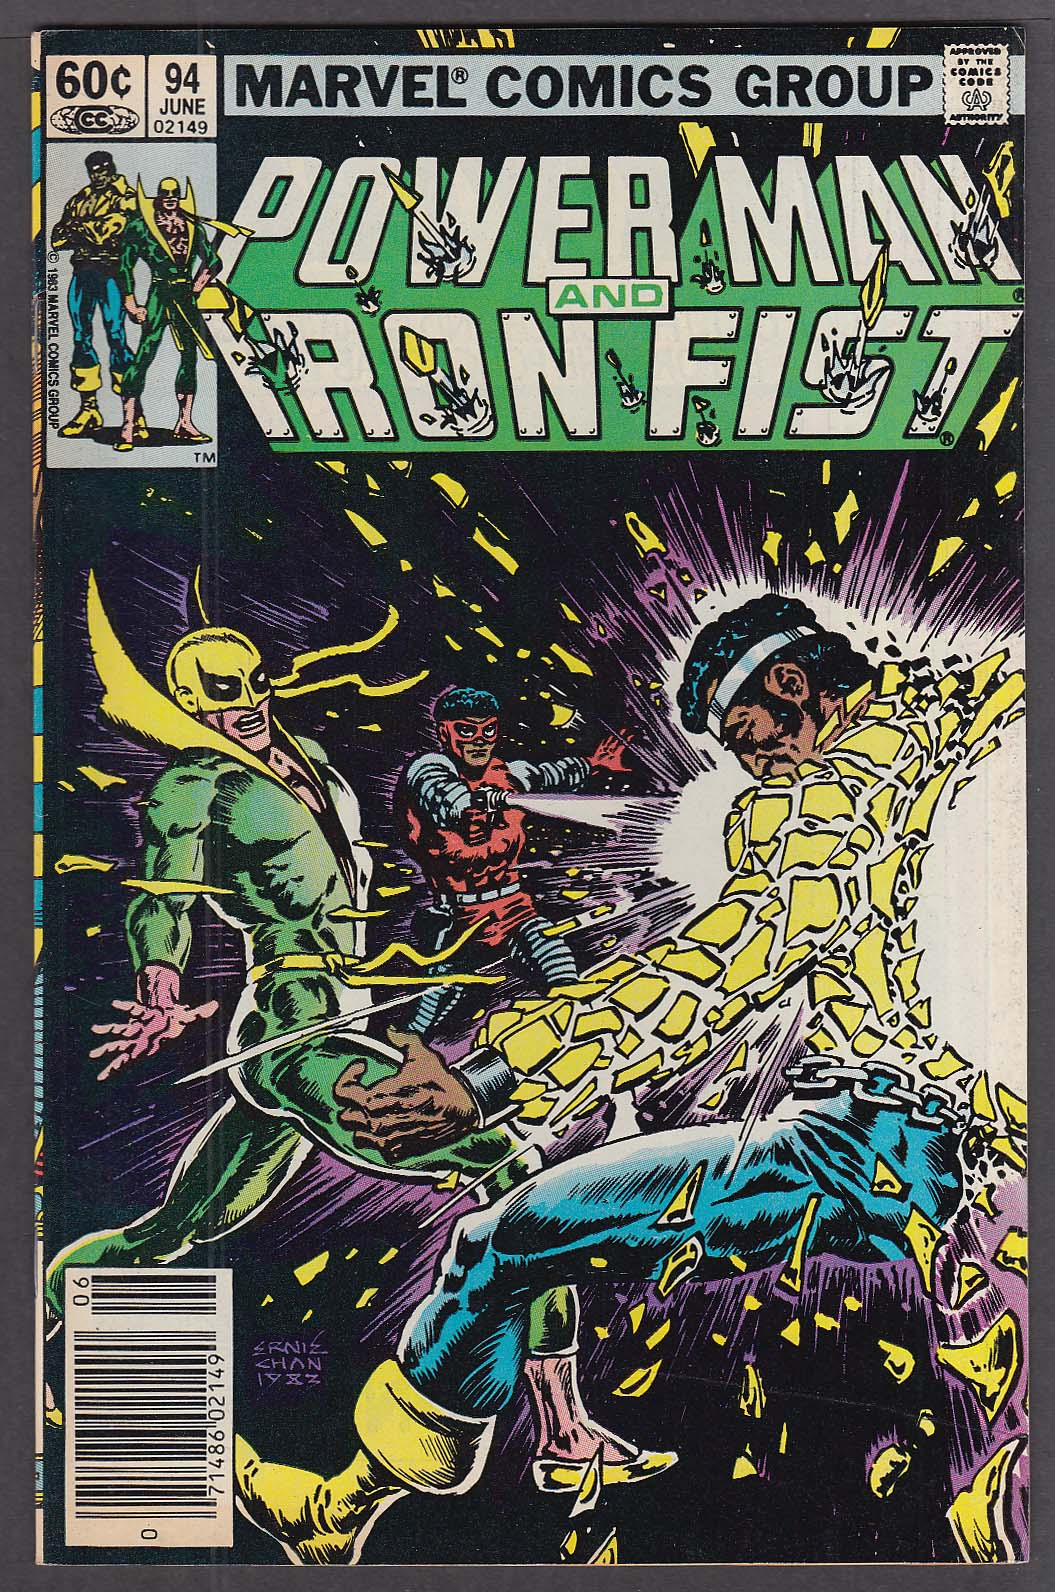 Image for POWER MAN & IRON FIST #94 Marvel comic book 6 1983